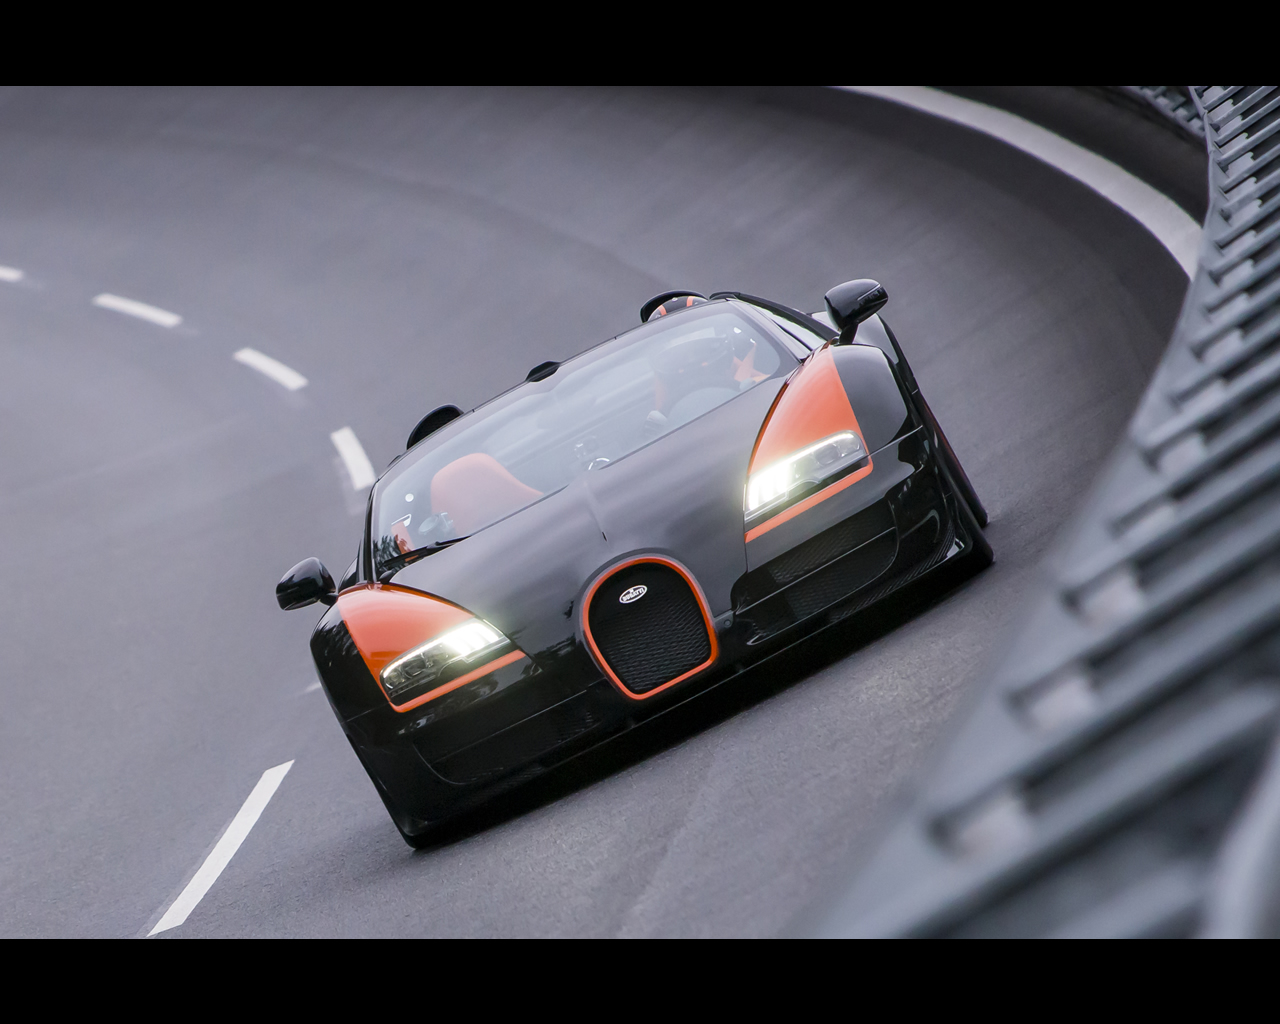 bugatti veyron 16 4 grand sport vitesse 2013 roadster world speed record. Black Bedroom Furniture Sets. Home Design Ideas